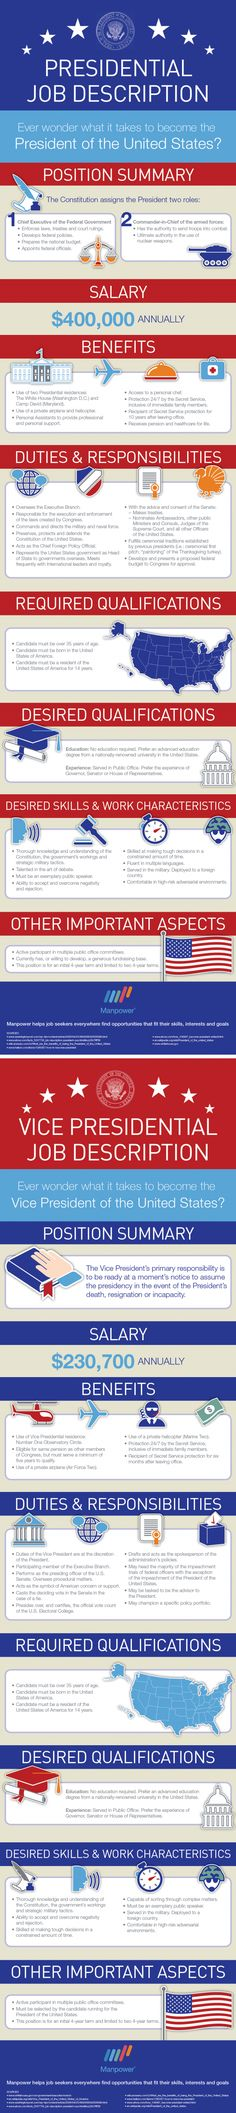 With the build up to the Presidential Elections happening later - president job description